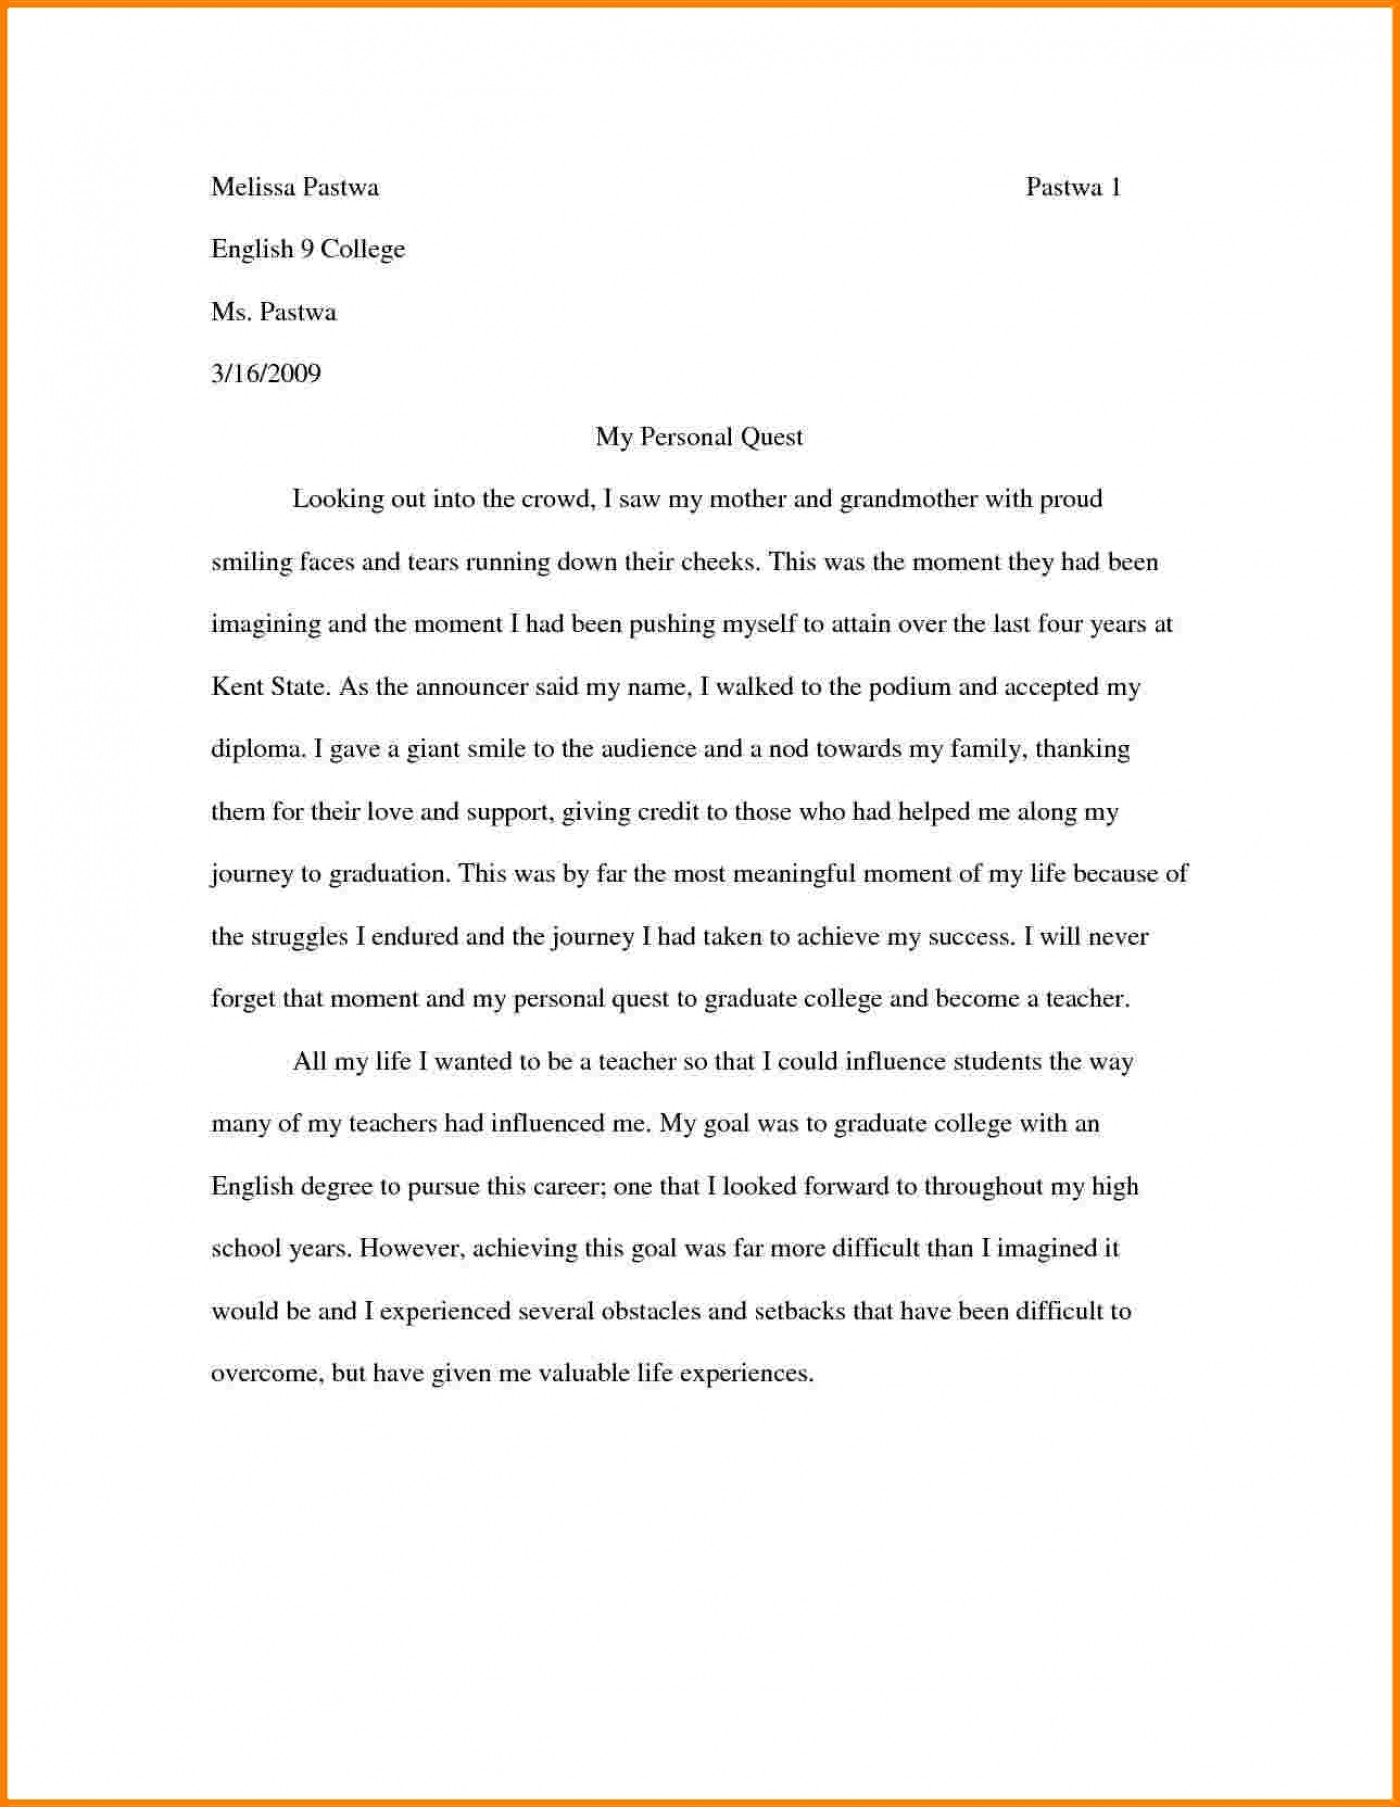 020 3341381556 How To Write Proposal20nt Essay Topics Buy Researchs Cheap Examples20 Good For Awesome Research Papers Topic College English Paper Interesting World History In 1400